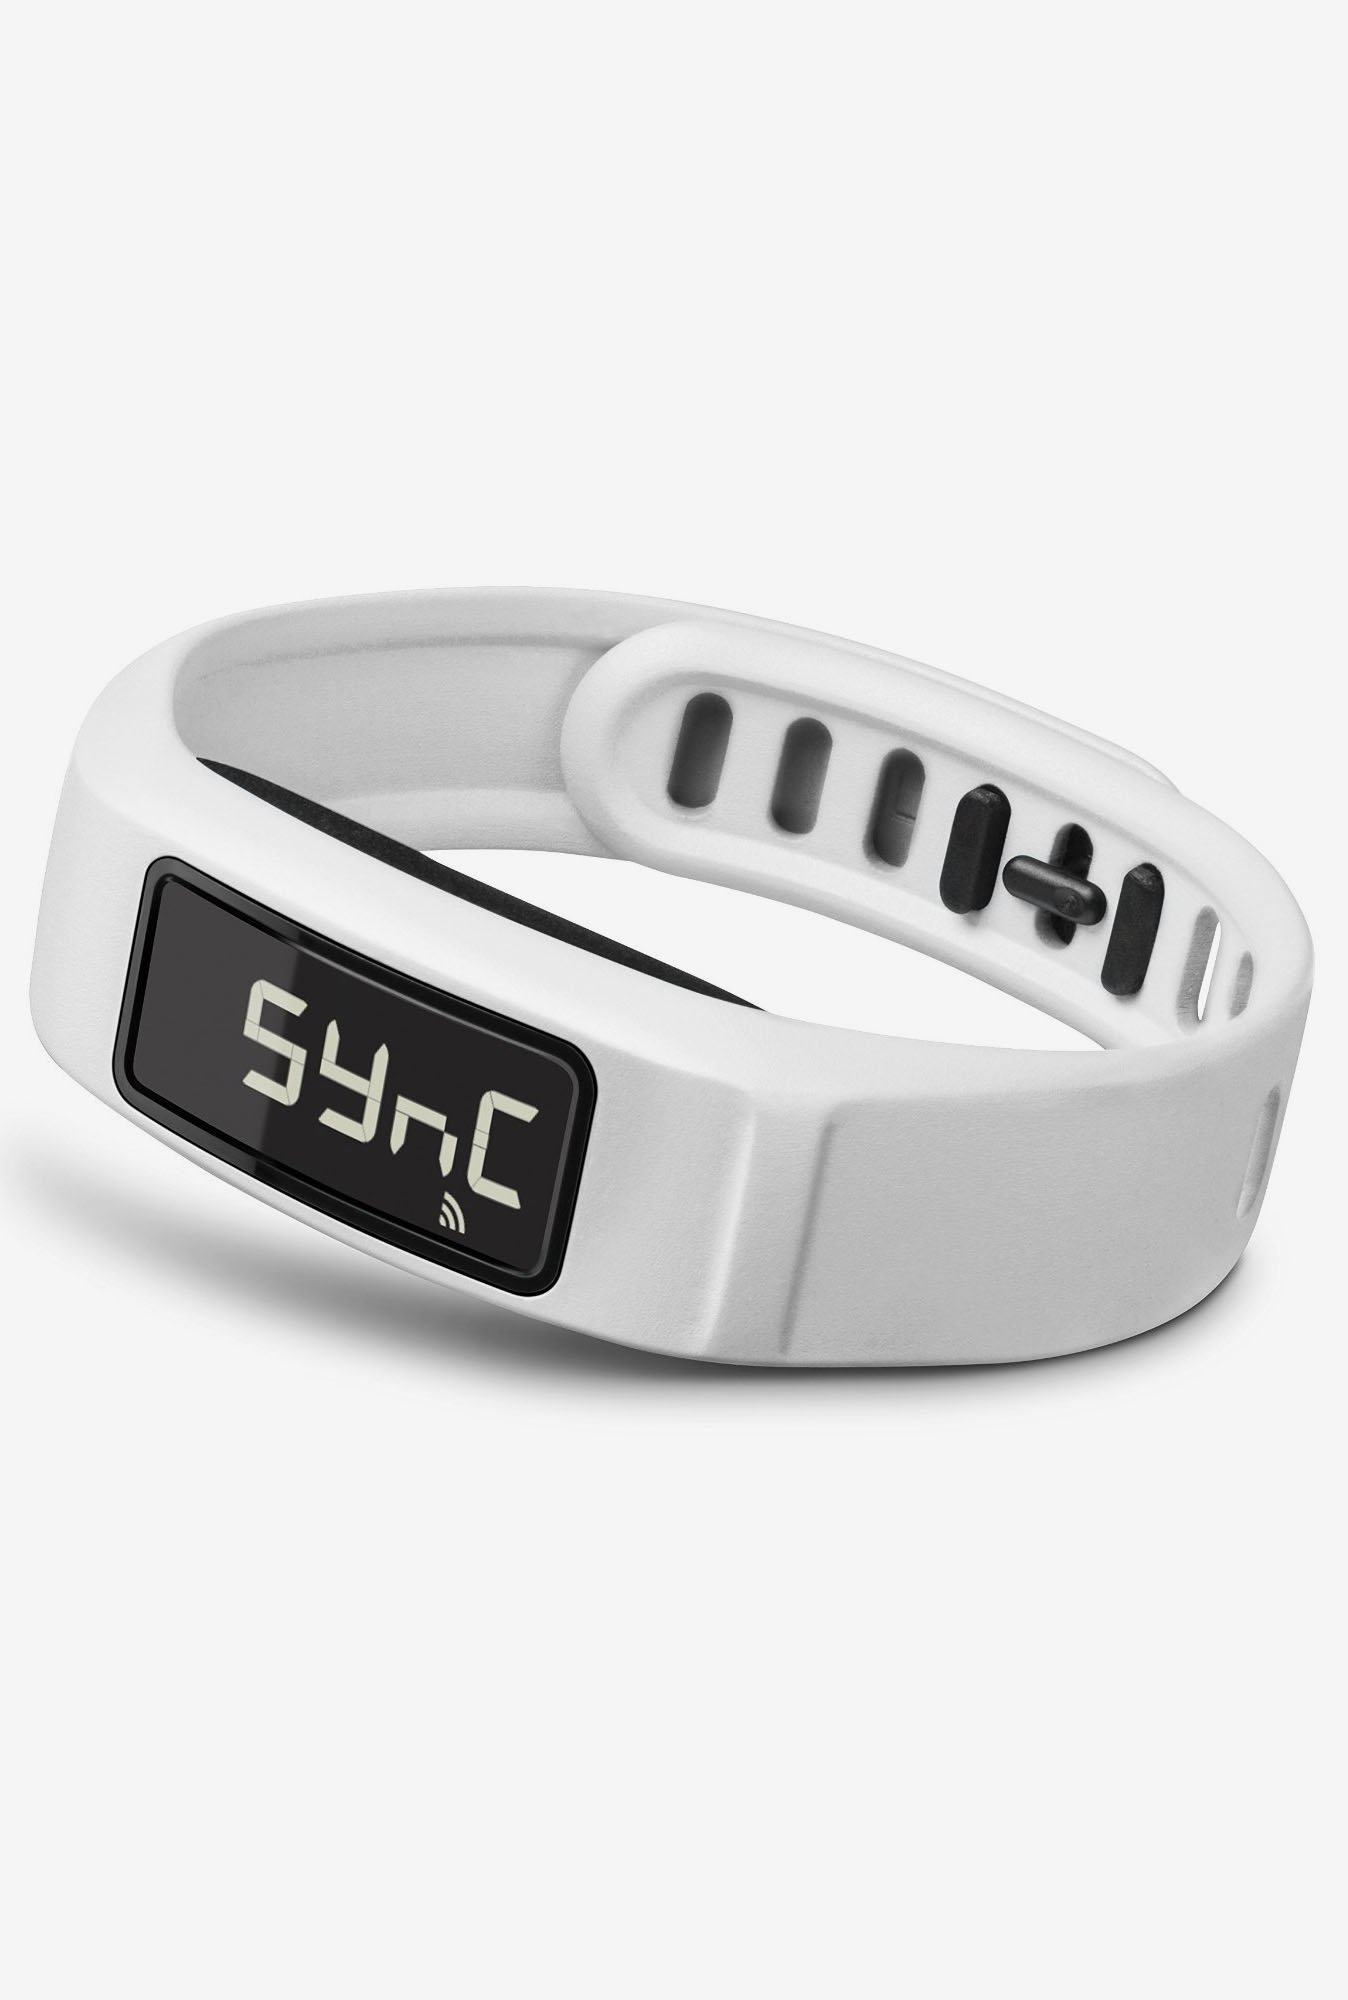 Garmin VivoFit2 Fitness Tracker (White)